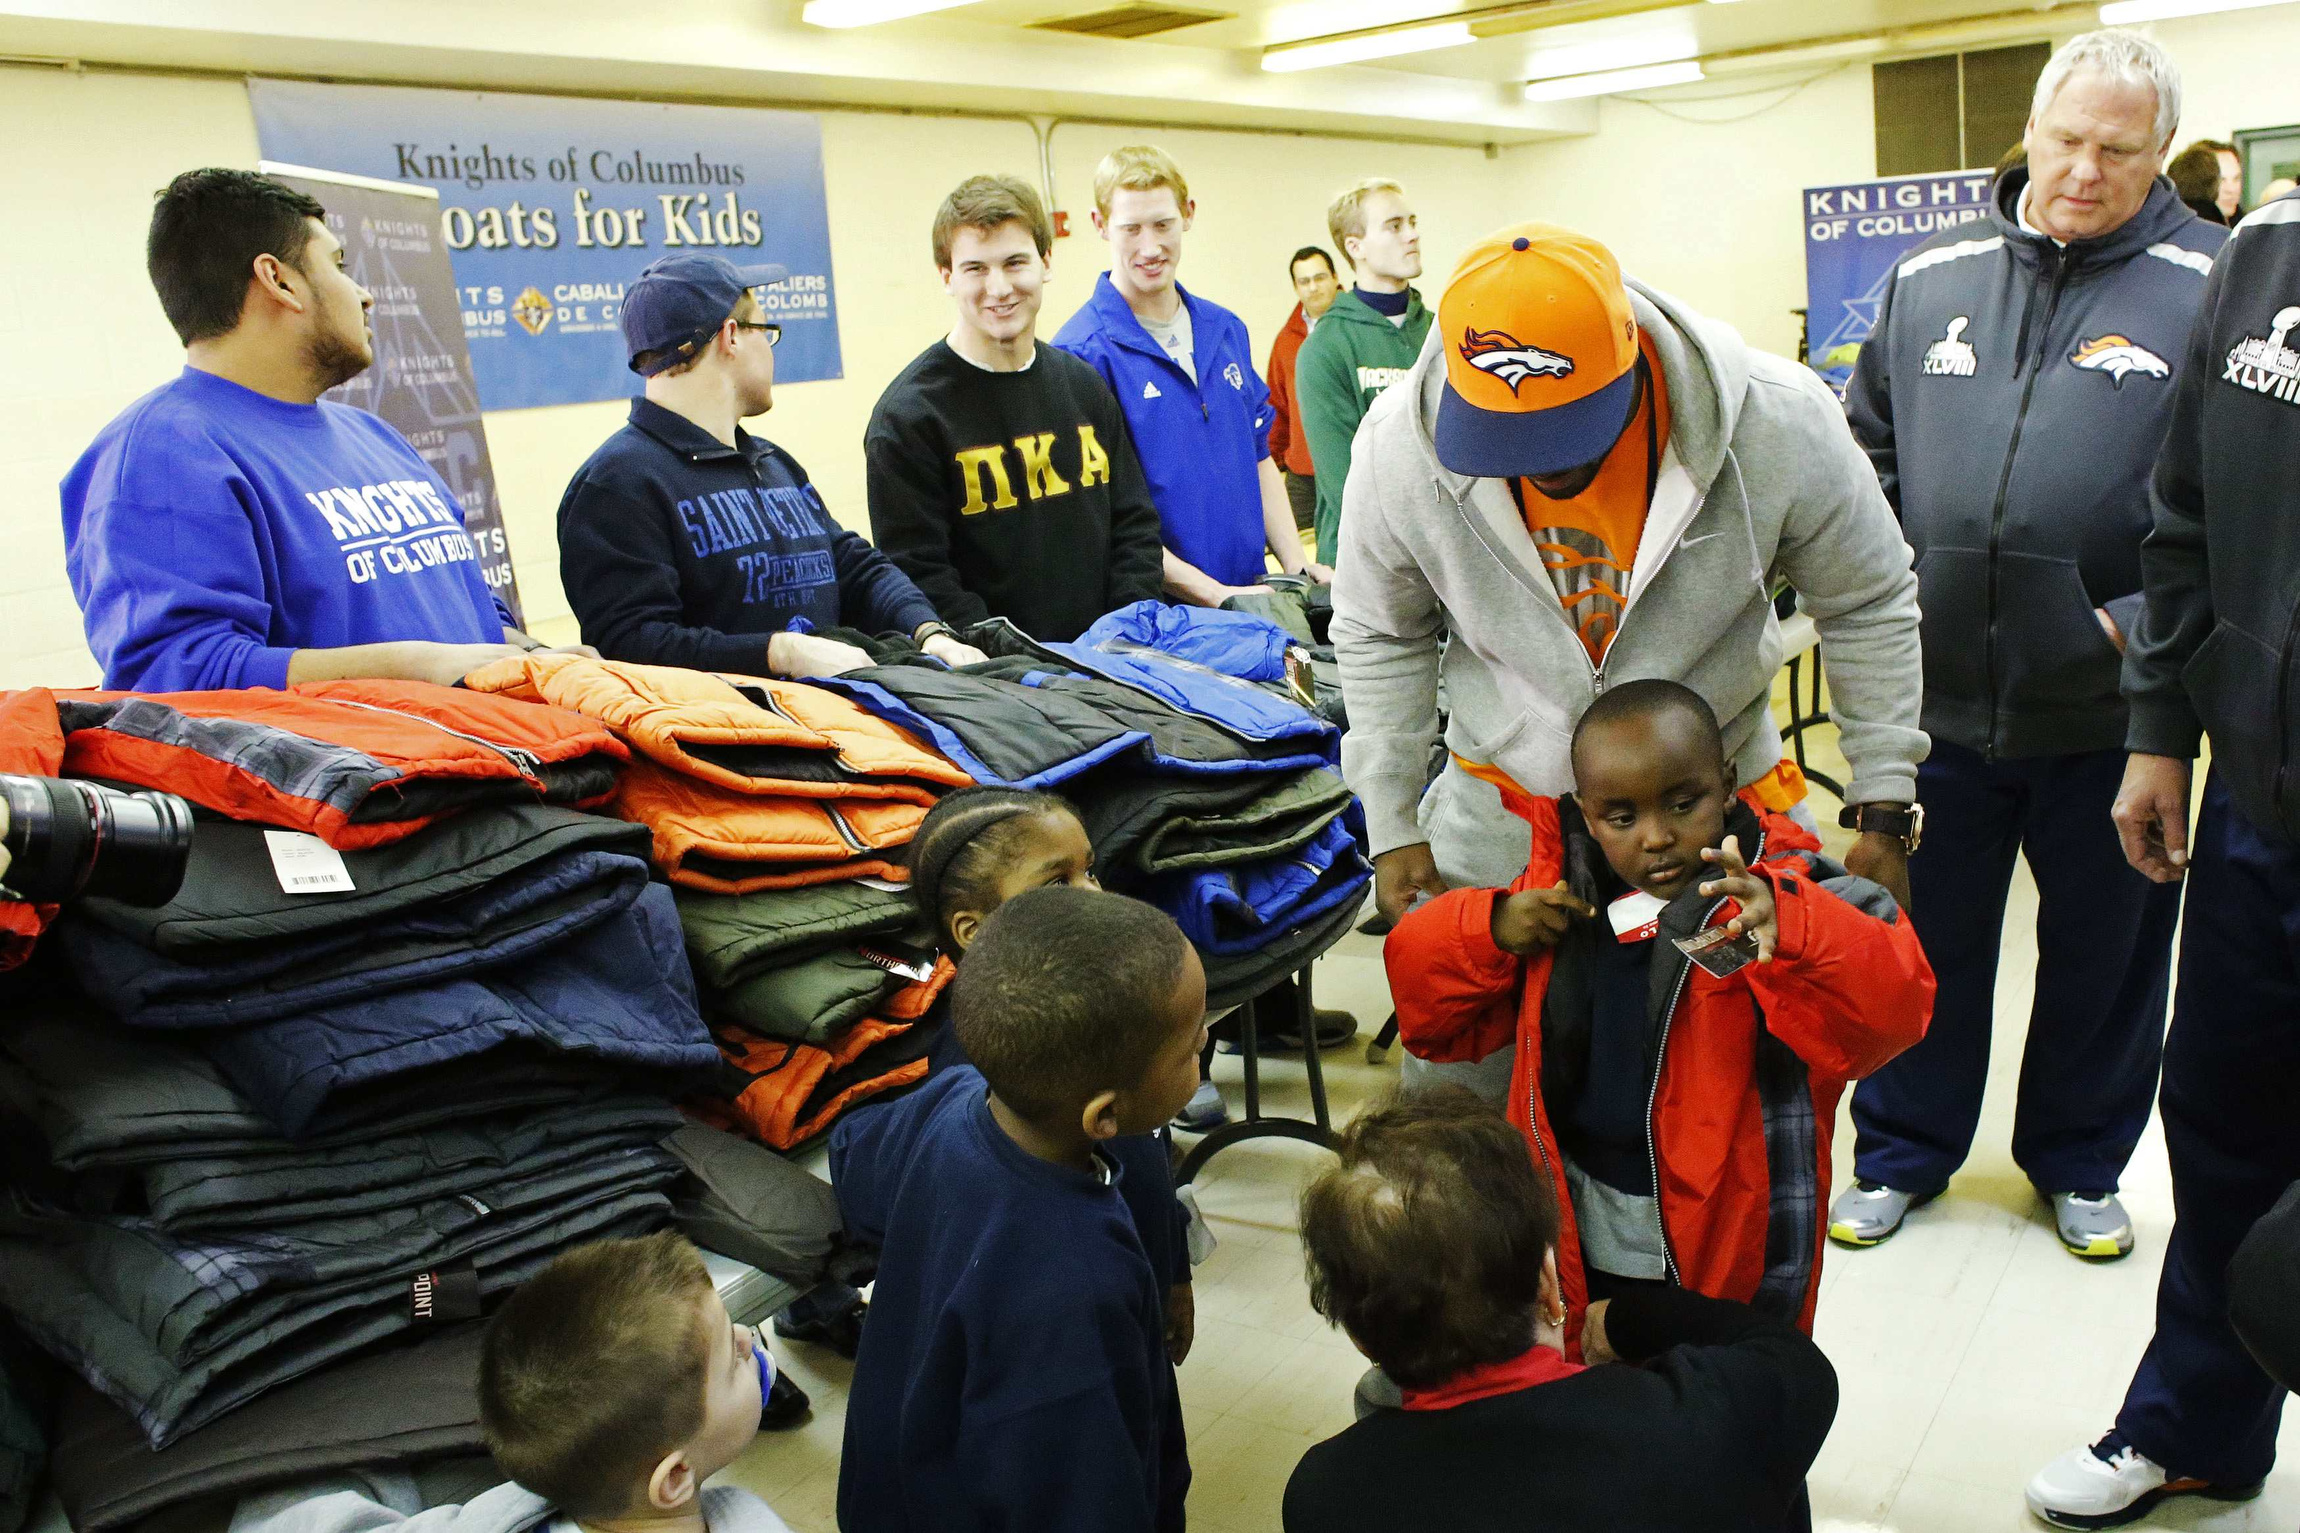 "Denver Broncos running back Knowshon Moreno helps a boy try on a jacket during a charitable event with the Knights of Columbus called ""Coats for Kids"" in Jersey City, N.J., Jan. 28. The Broncos were in New Jersey to face the Seattle Seahawks in Super Bowl XLVIII Feb. 2 at MetLife Stadium in East Rutherford, N.J. (CNS photo/Eduardo Munoz, Reuters) (Jan. 29, 2014)"